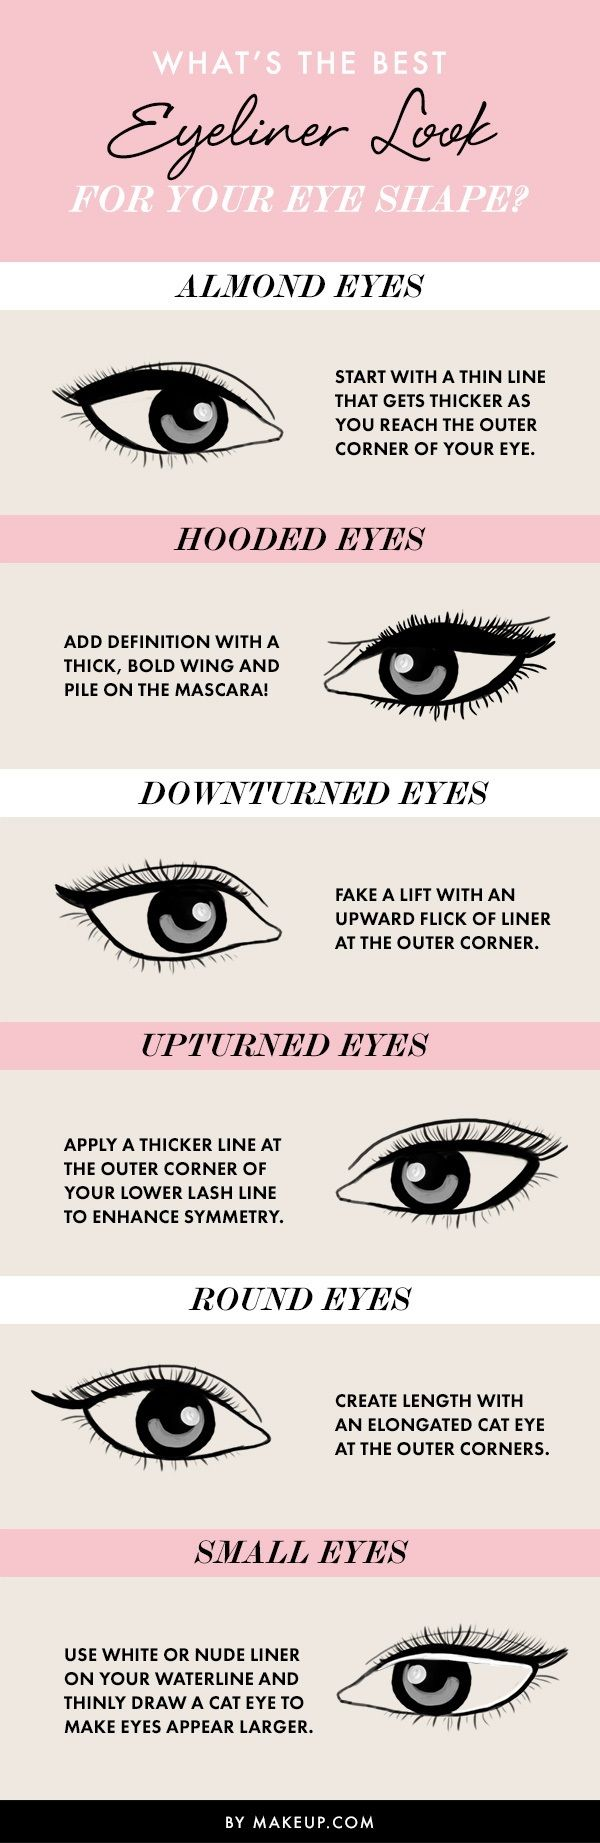 Great tips for using Synergie Magnifye Eyeliners. The best long lasting gel eyeliner with a great, easy to use brush. Available at skinelegance.com http://tinyurl.com/lfczufv